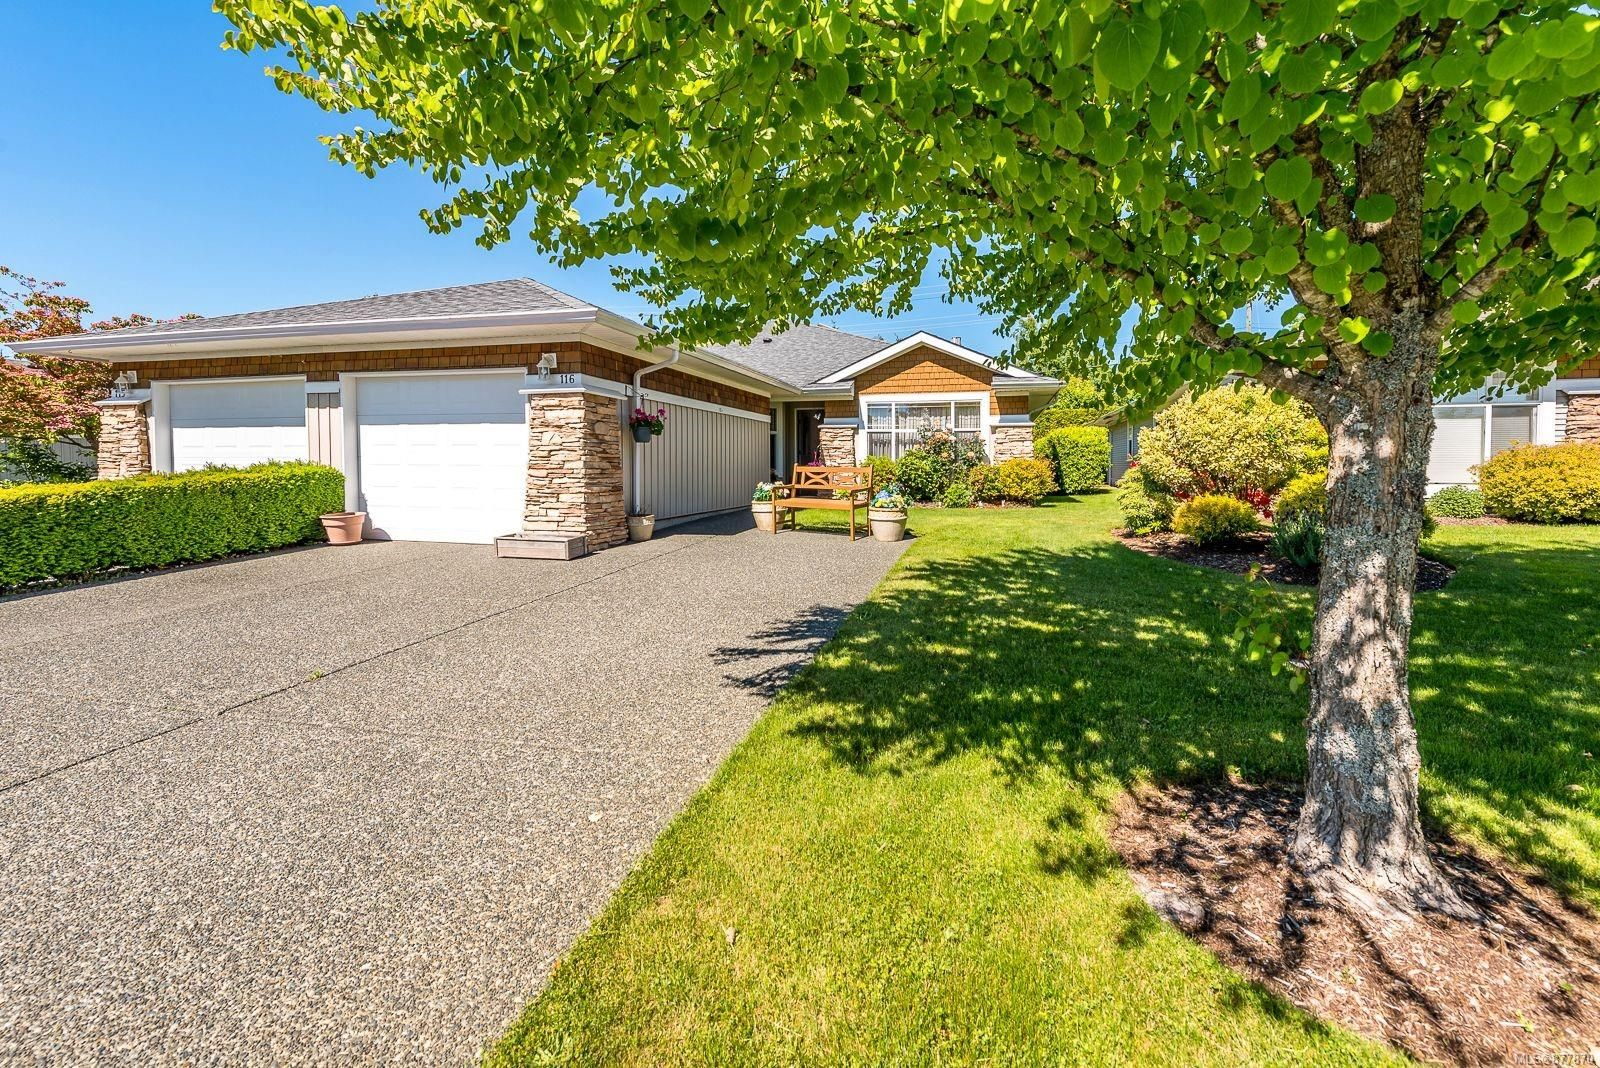 Main Photo: 116 1919 St. Andrews Pl in : CV Courtenay East Row/Townhouse for sale (Comox Valley)  : MLS®# 877870